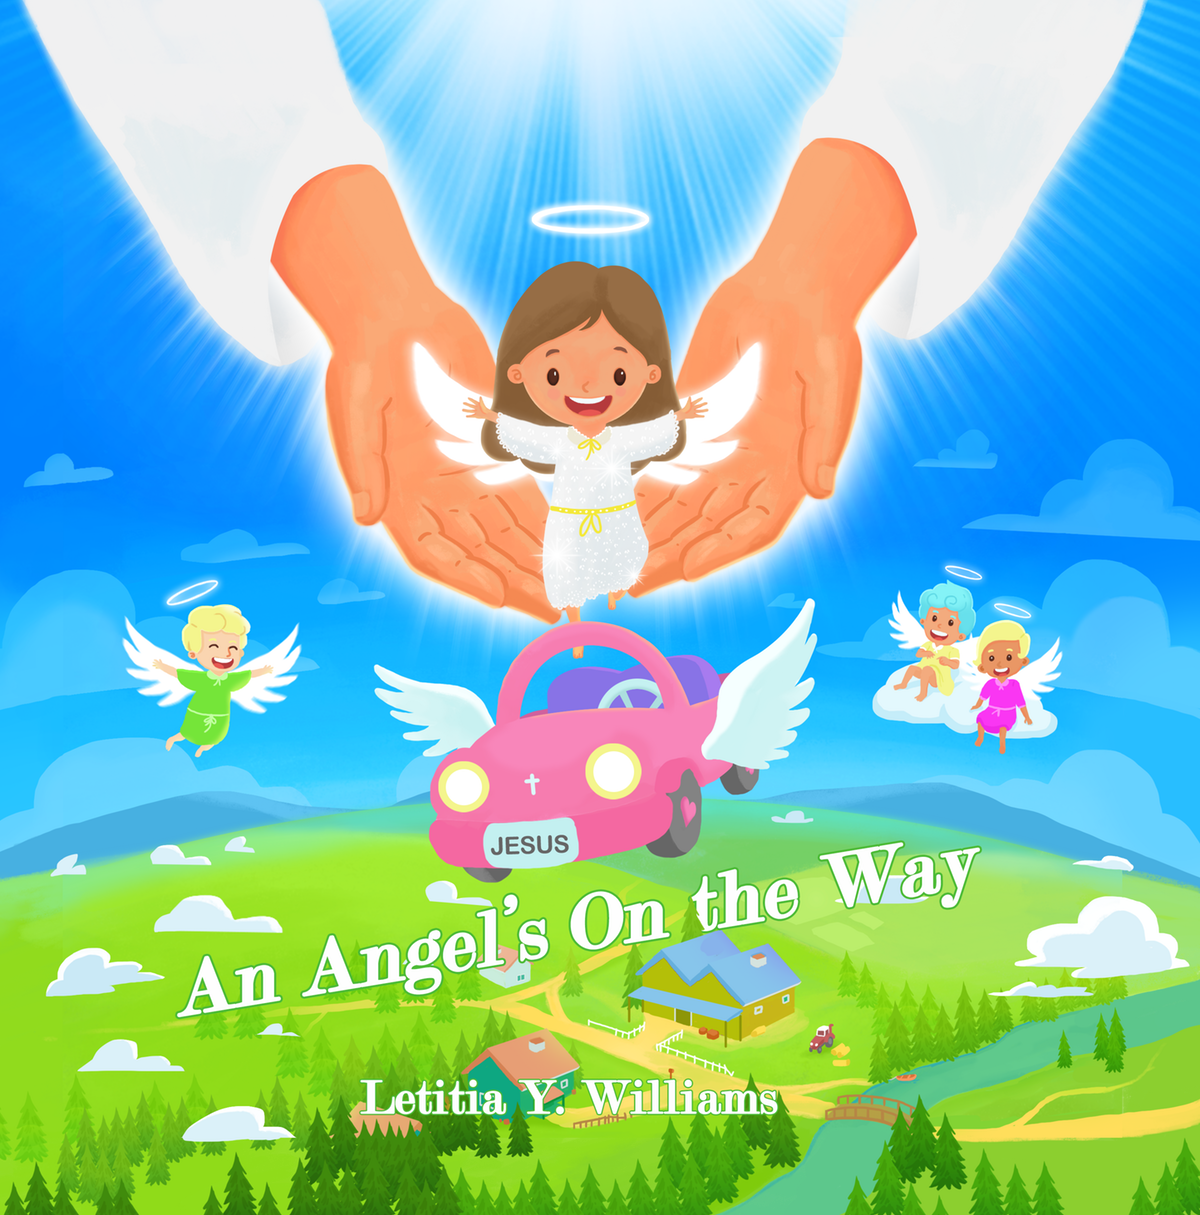 An Angel Is on the Way